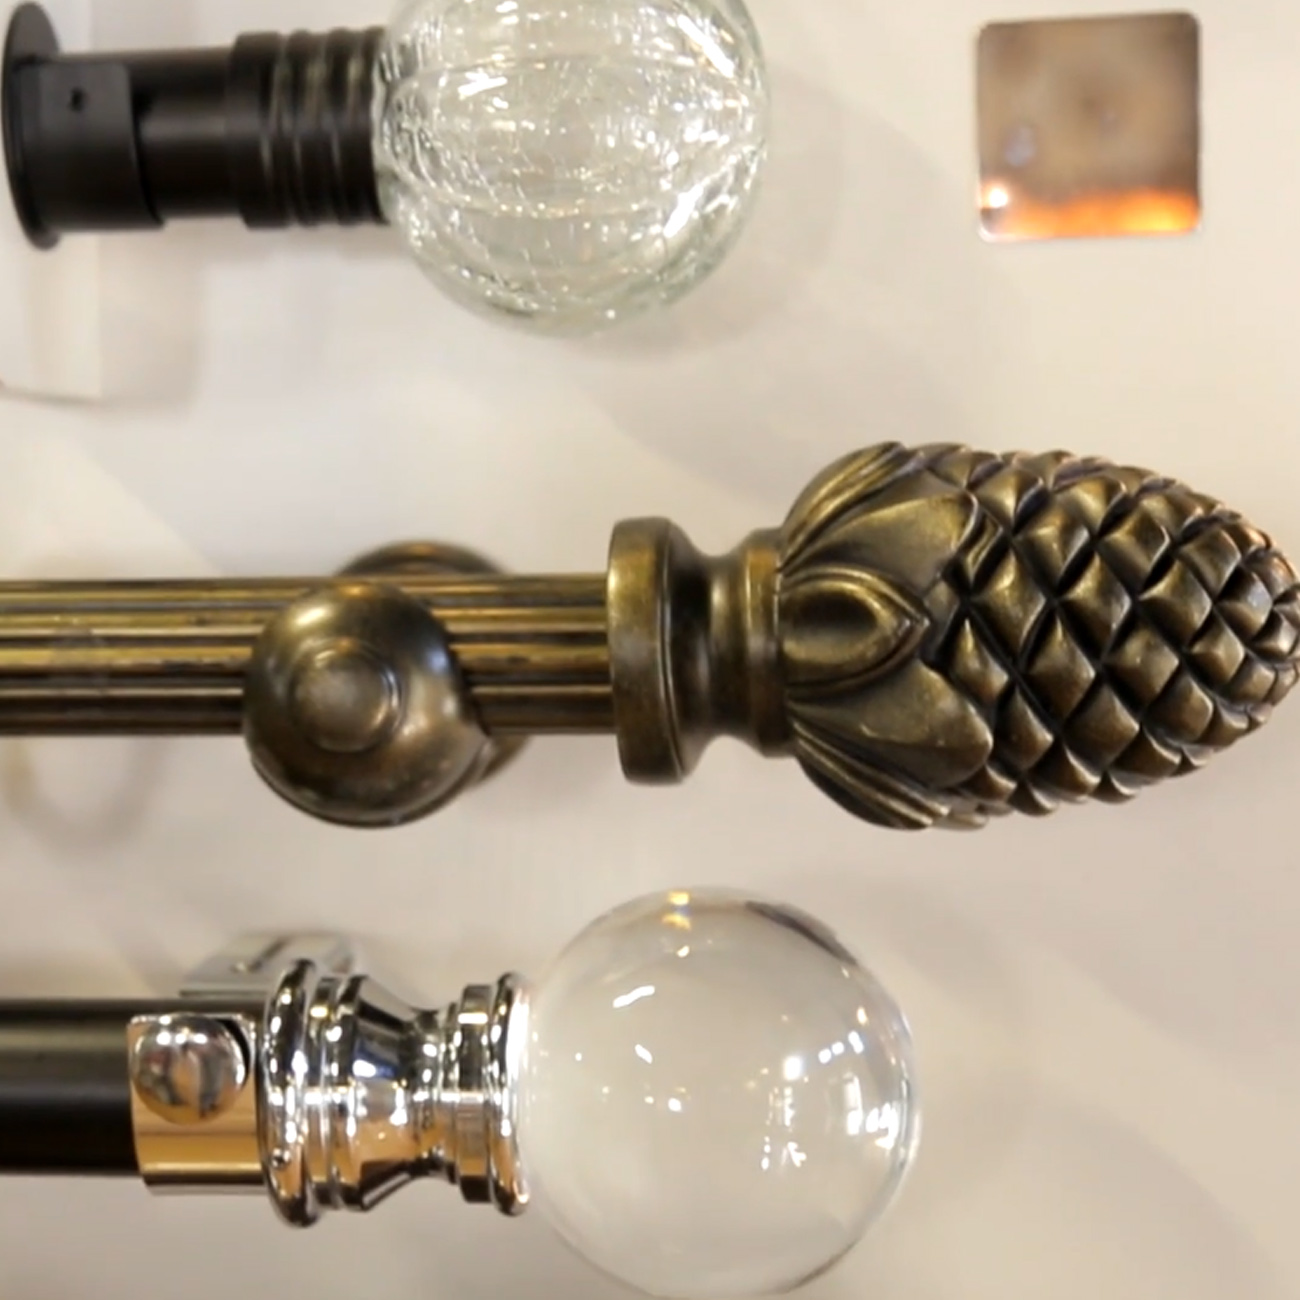 knobs and ends for curtain rods